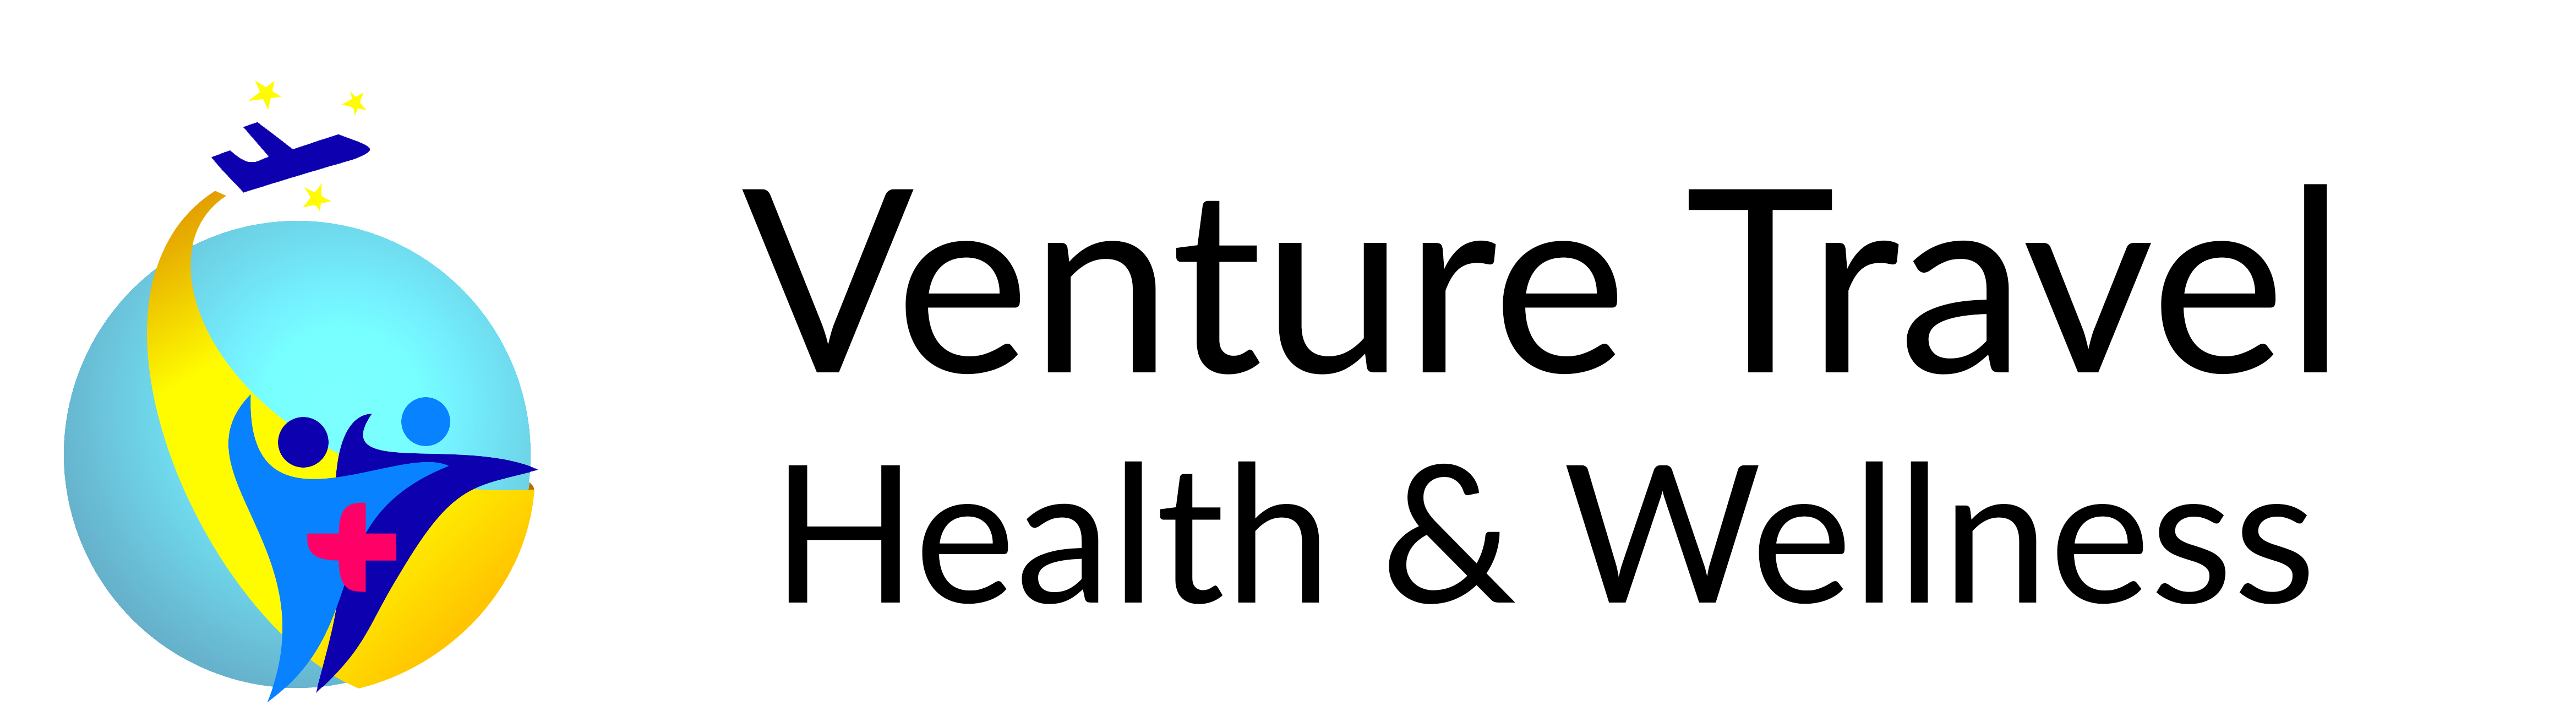 Venture Travel Health